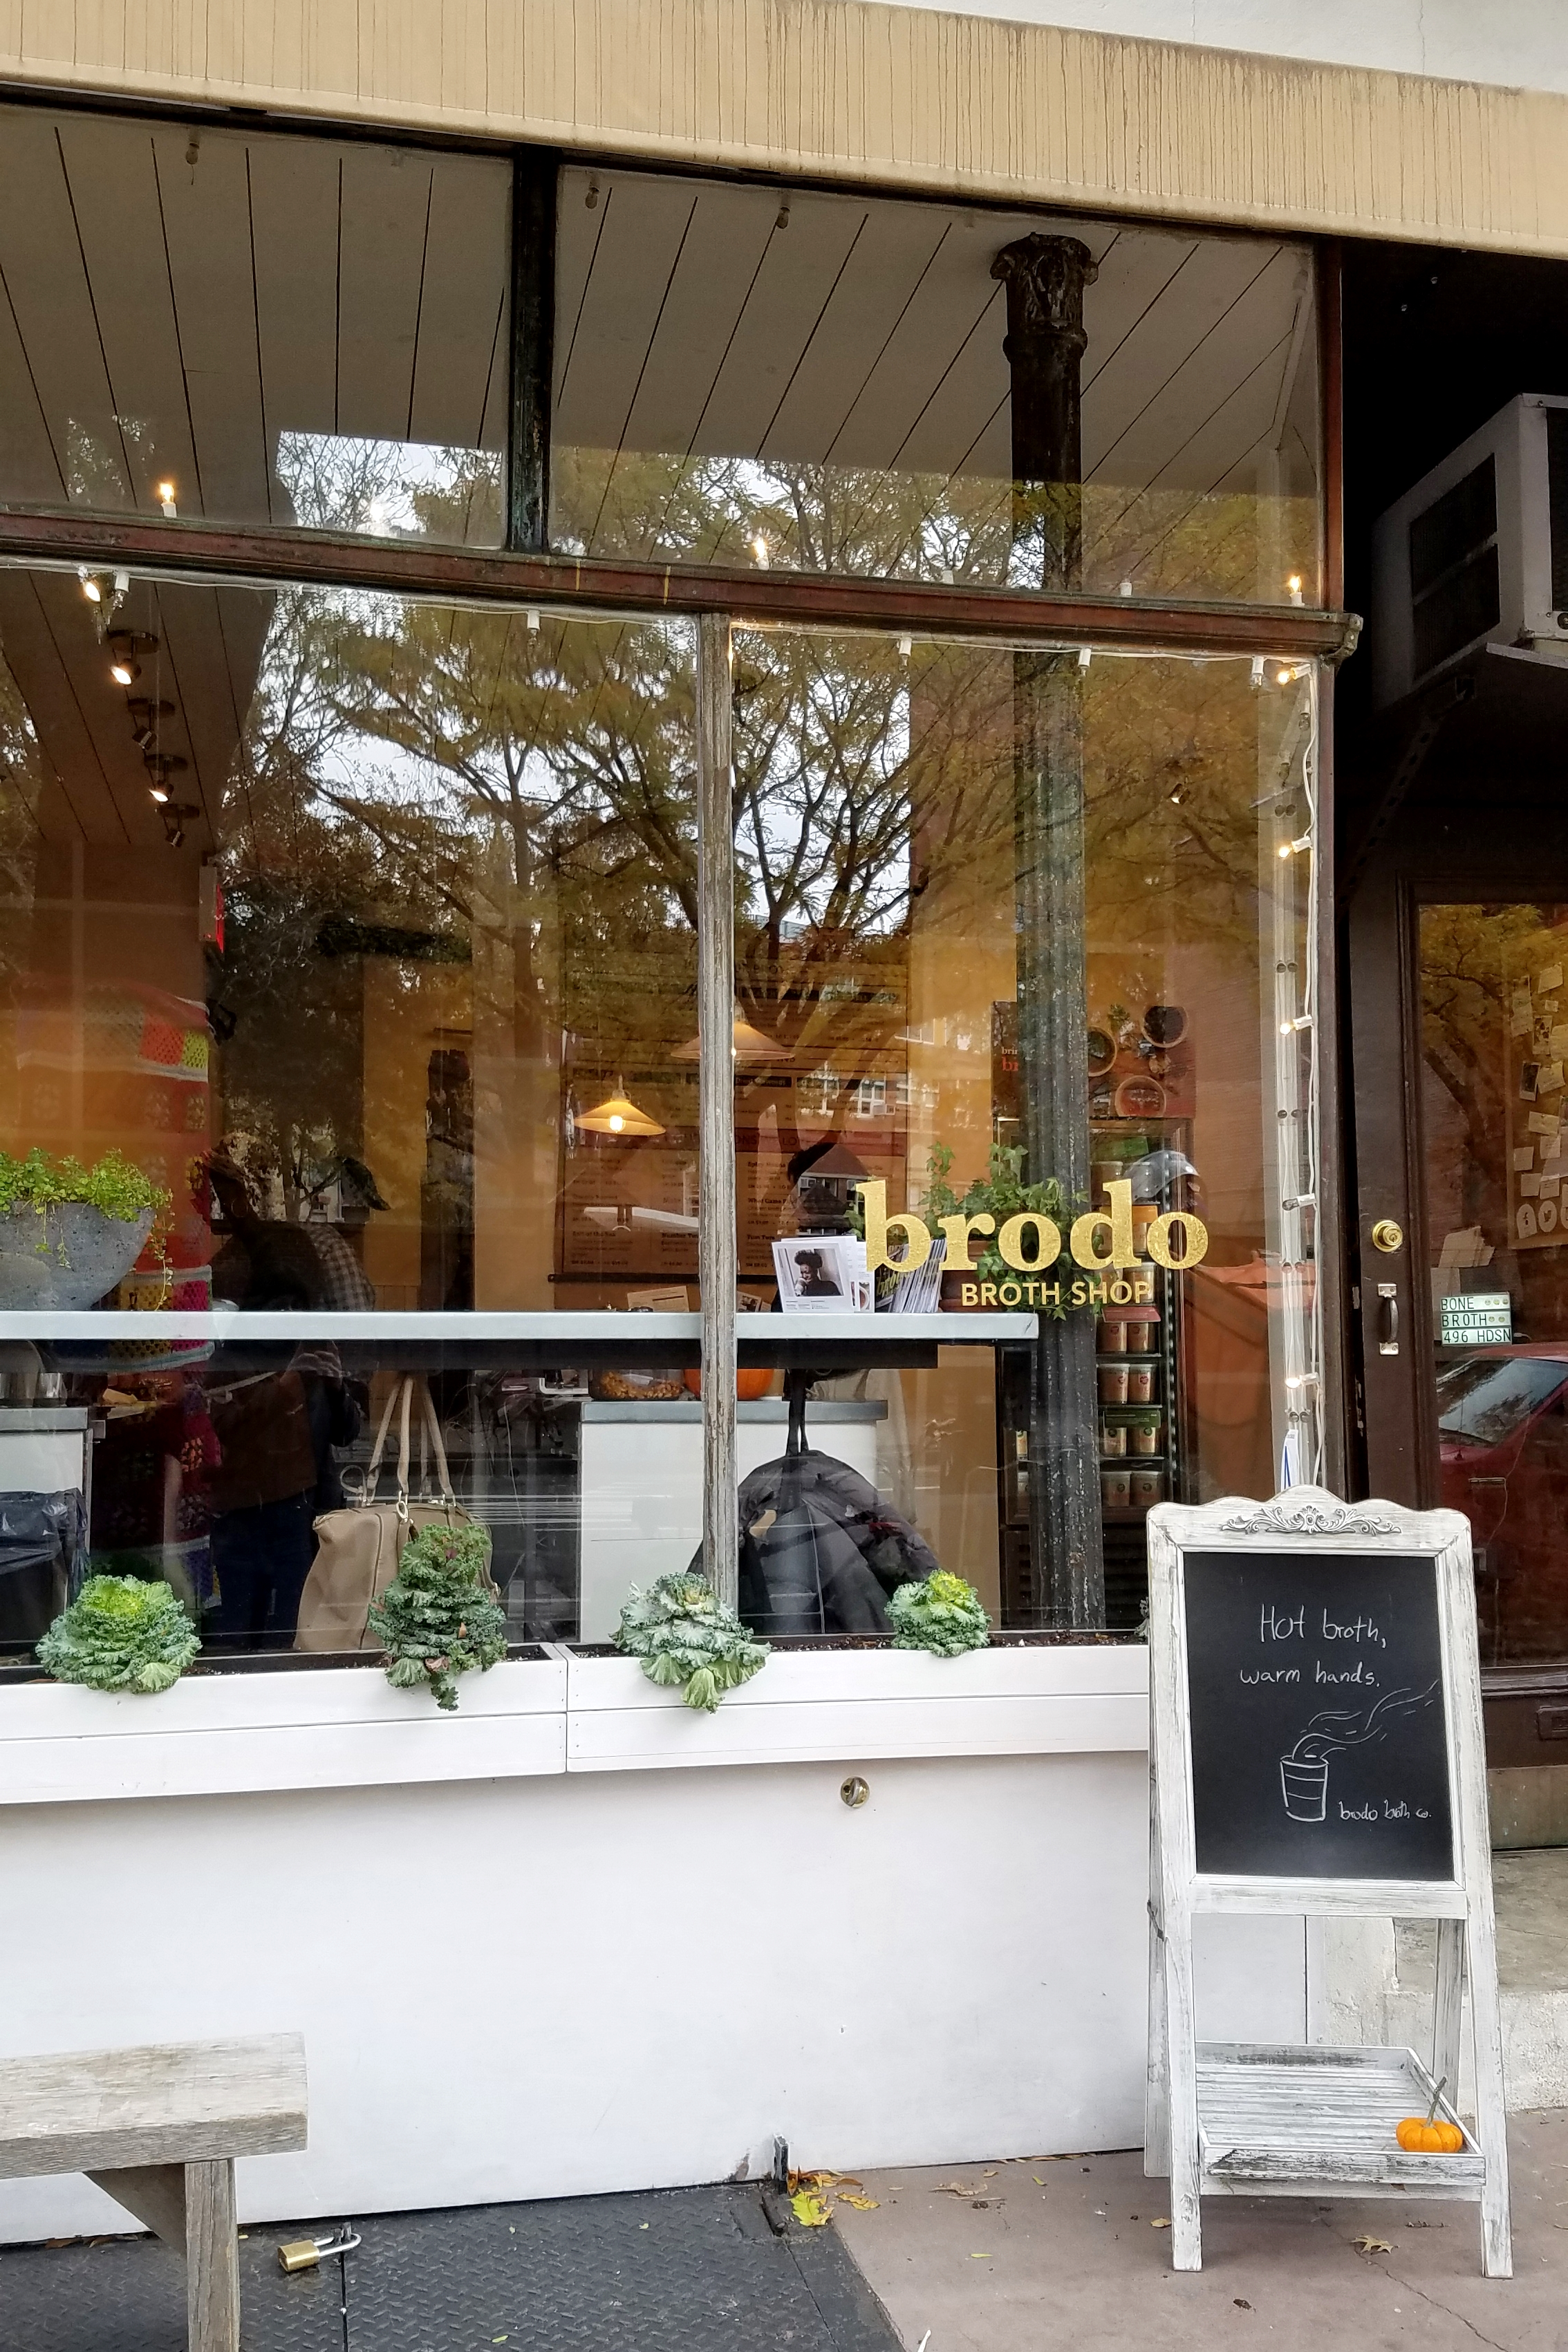 Brodo's Cute Storefront in the West Village